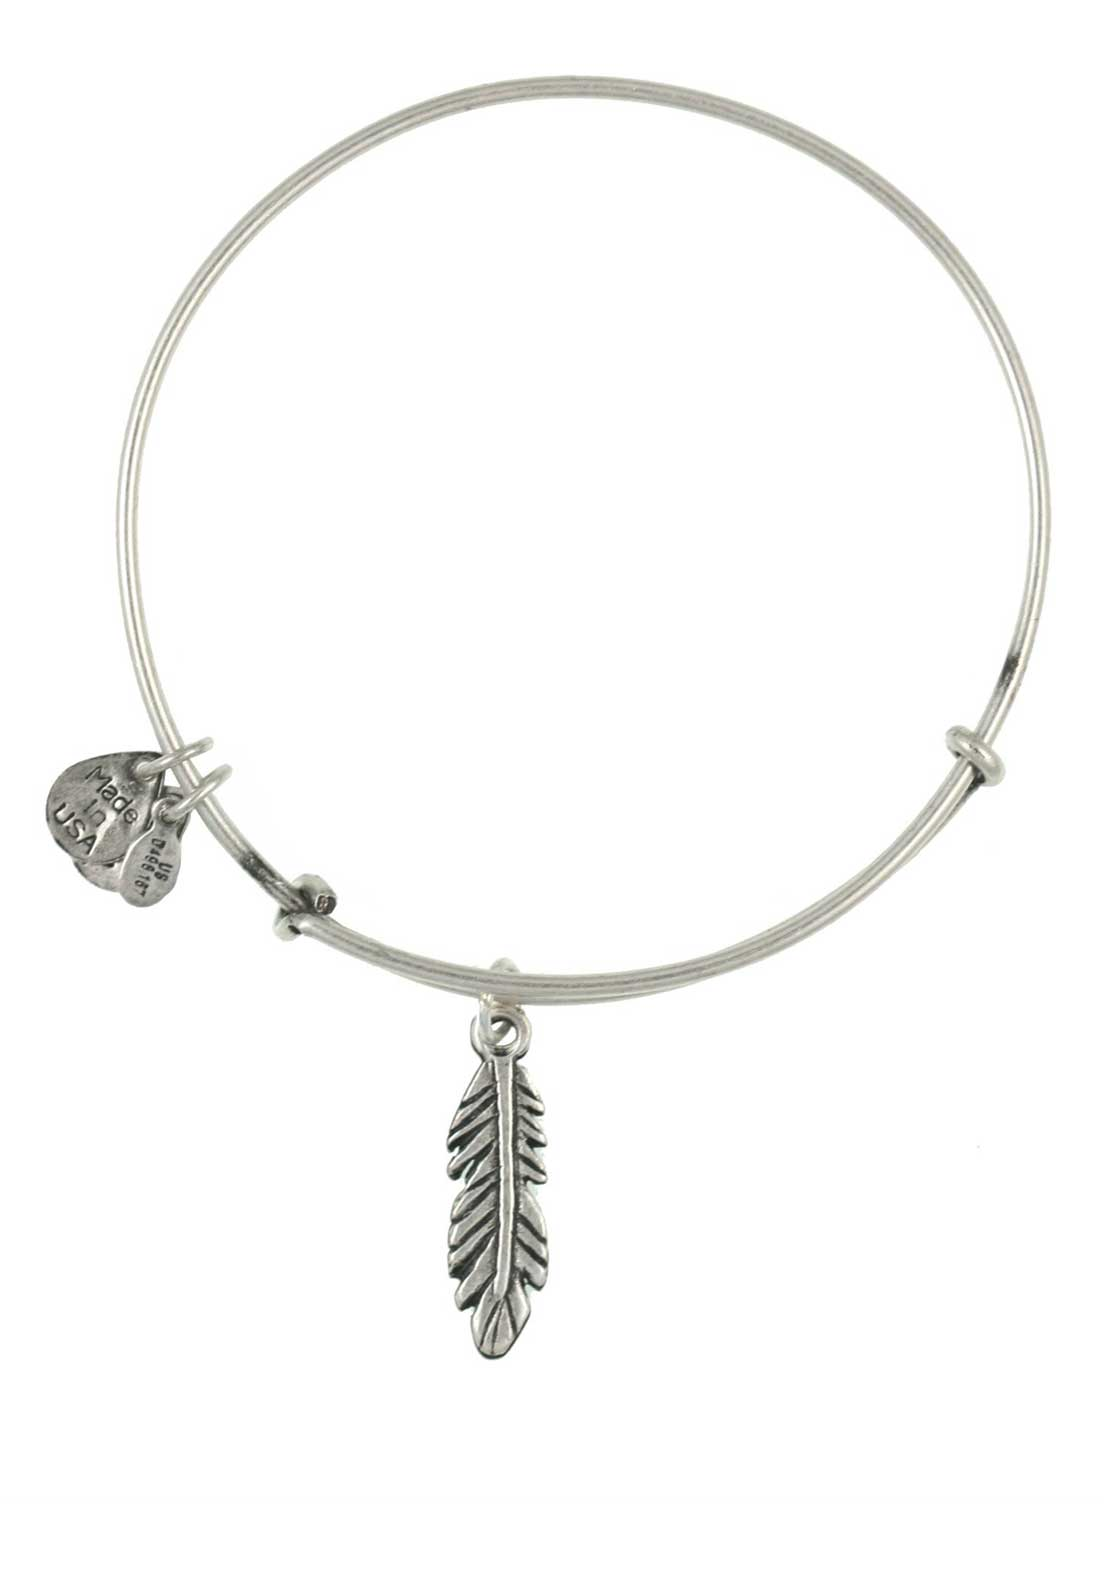 Alex and Ani (+) Energy Feather Bracelet, Silver